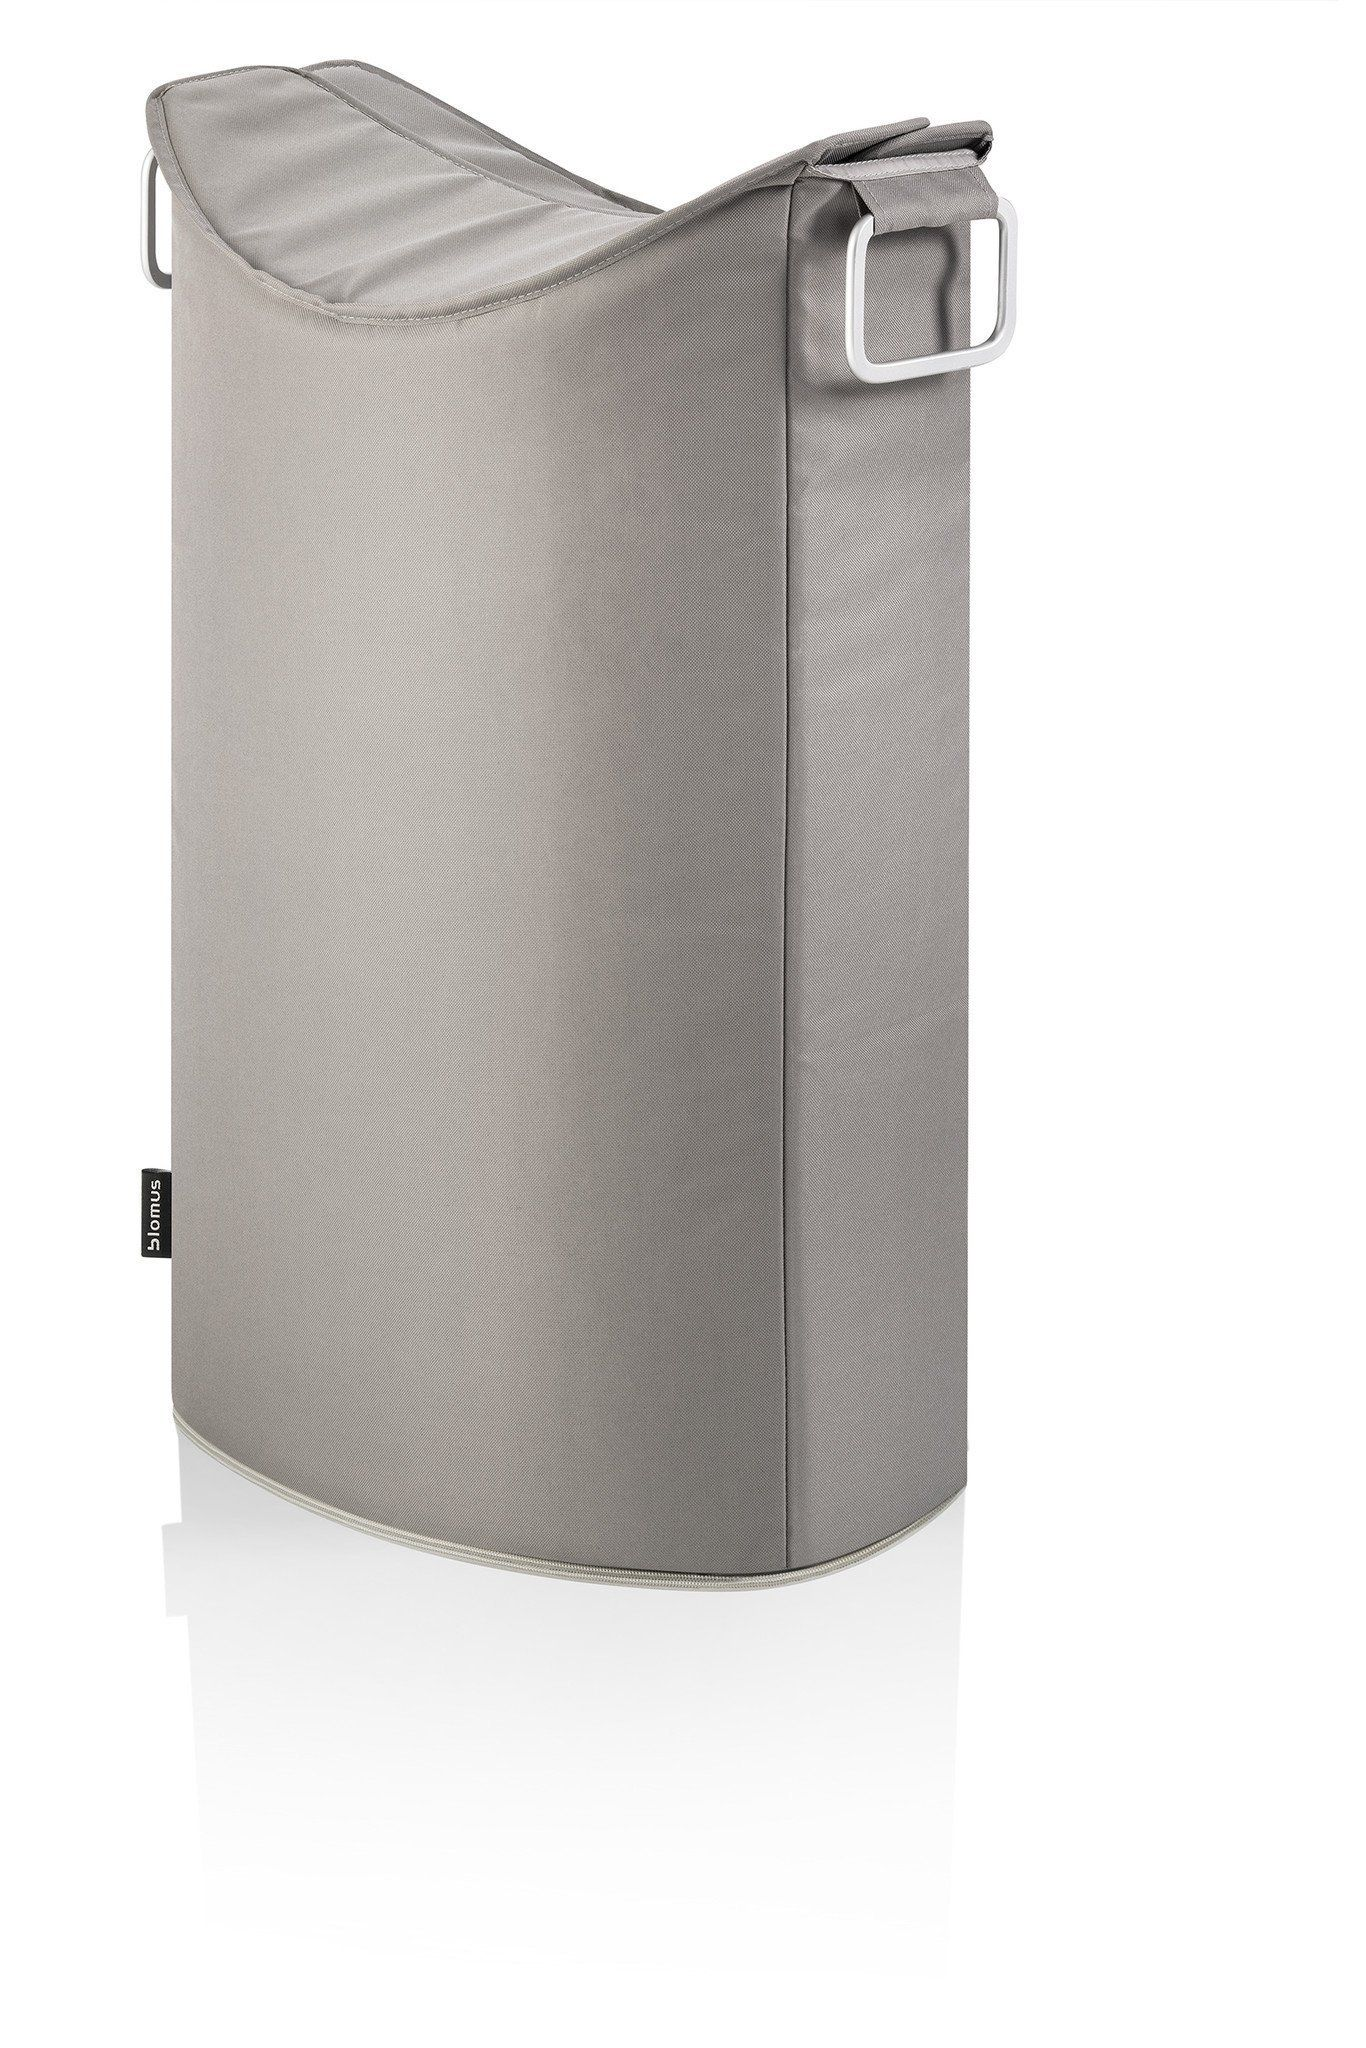 blomus laundry bin laundry bin and products